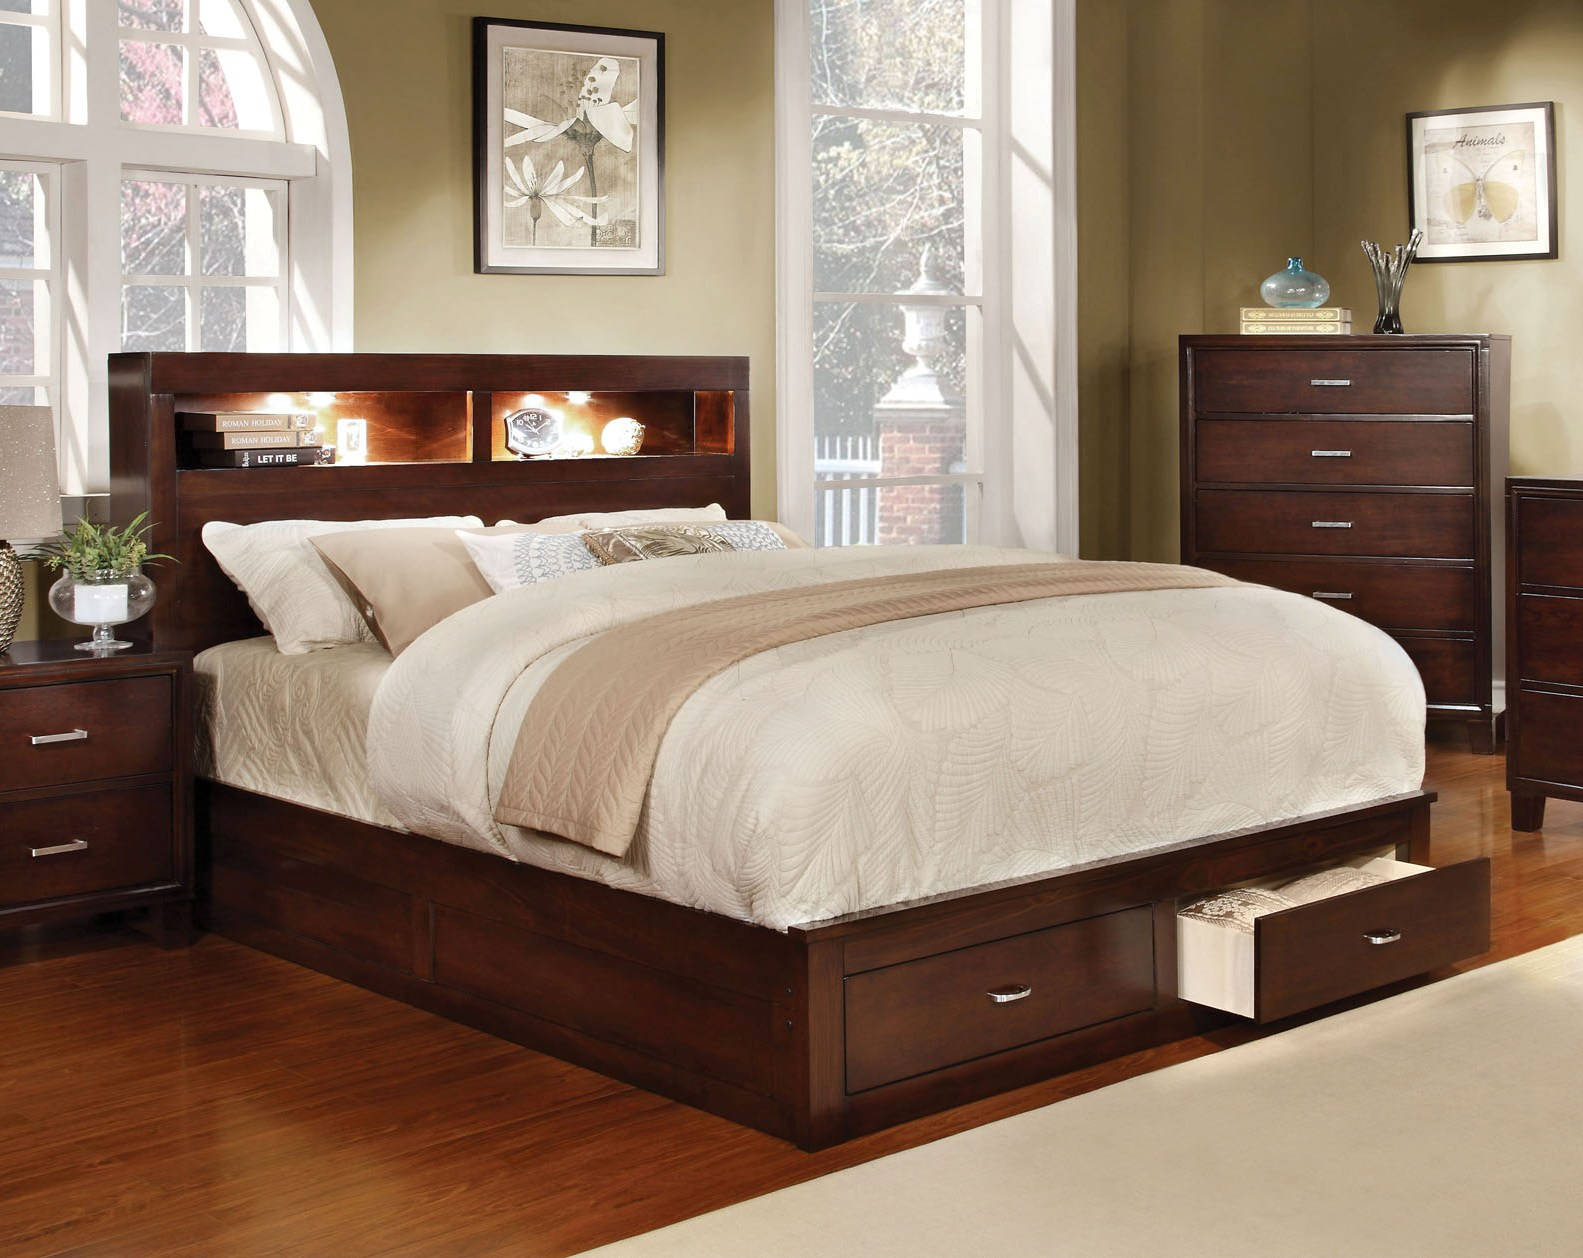 Furniture Of America Gerico Ii Brown Cherry Cal King Bed